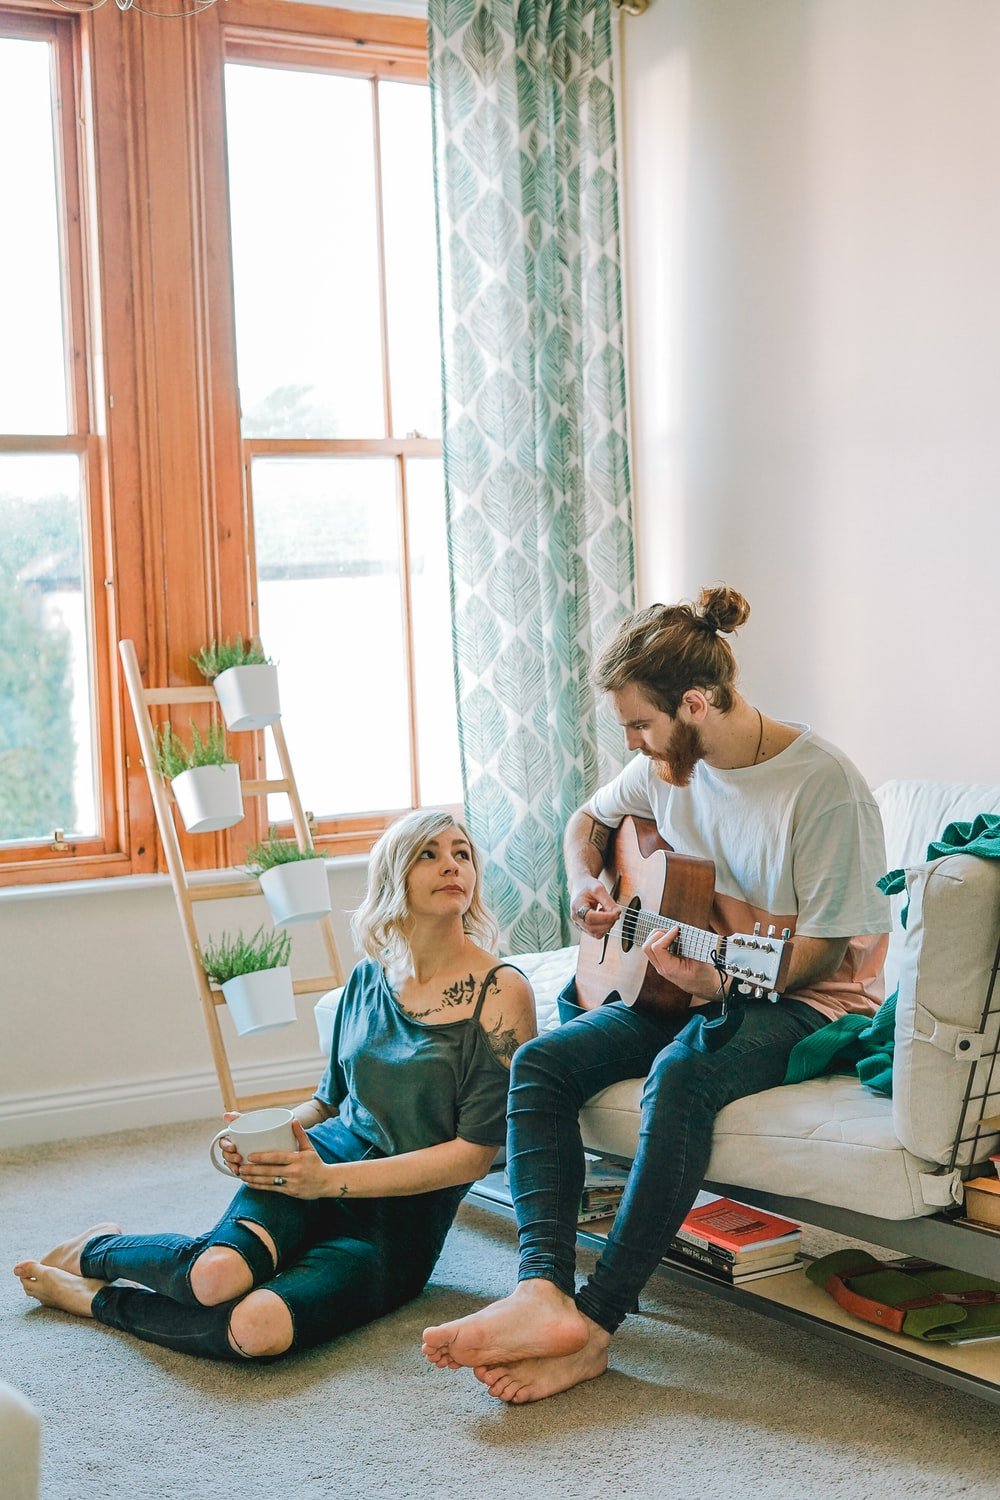 man sitting on sofa playing guitar looking at girl sitting on the ground  near window inside room photo